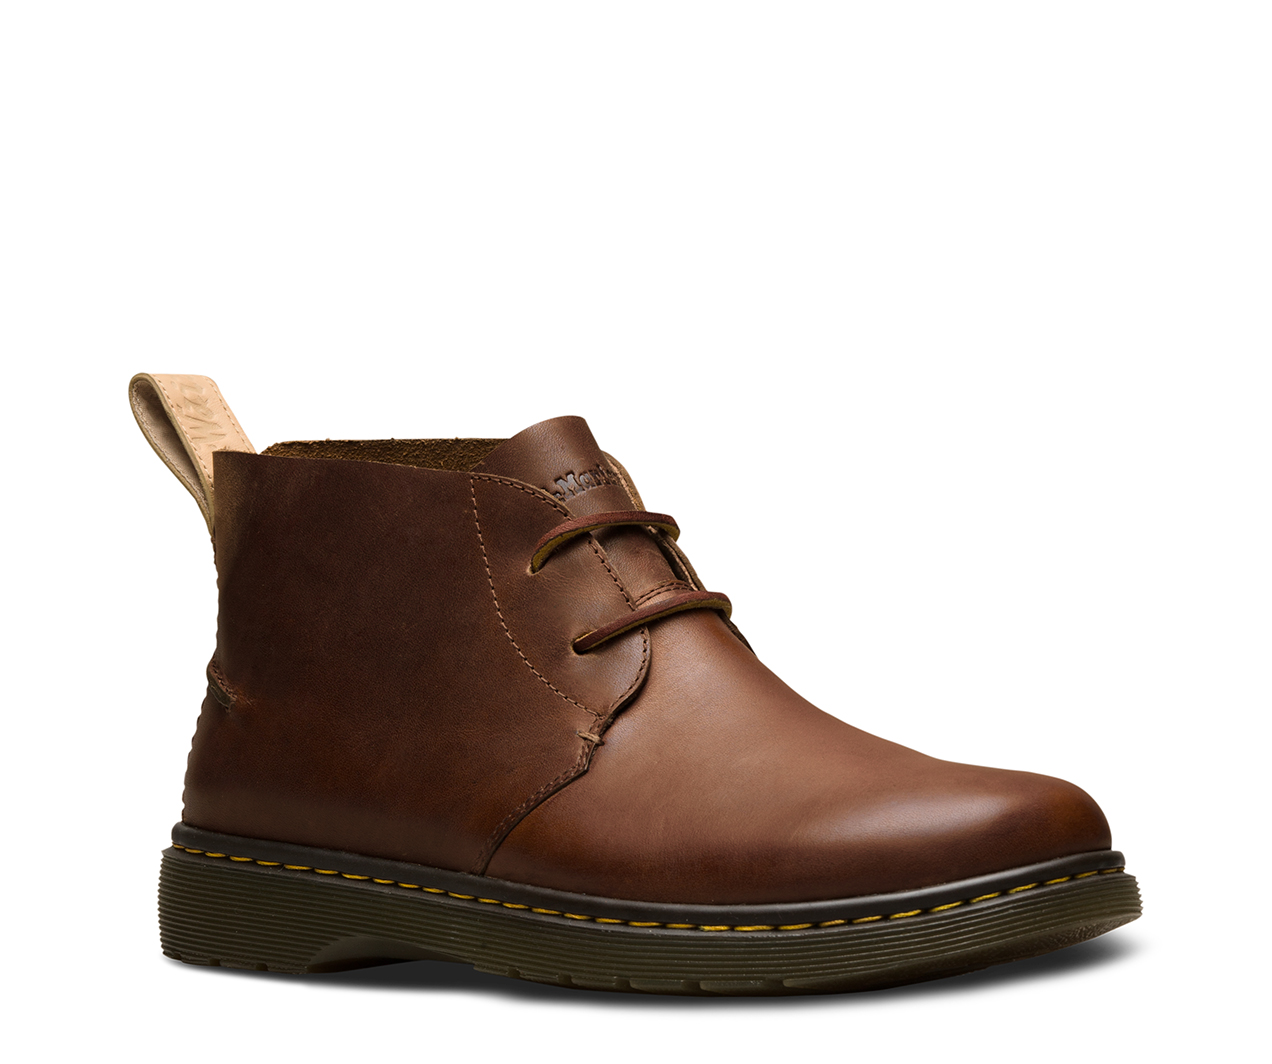 EMBER WESTFIELD   AW18   The Official FR Dr Martens Store 43dcfb950a23